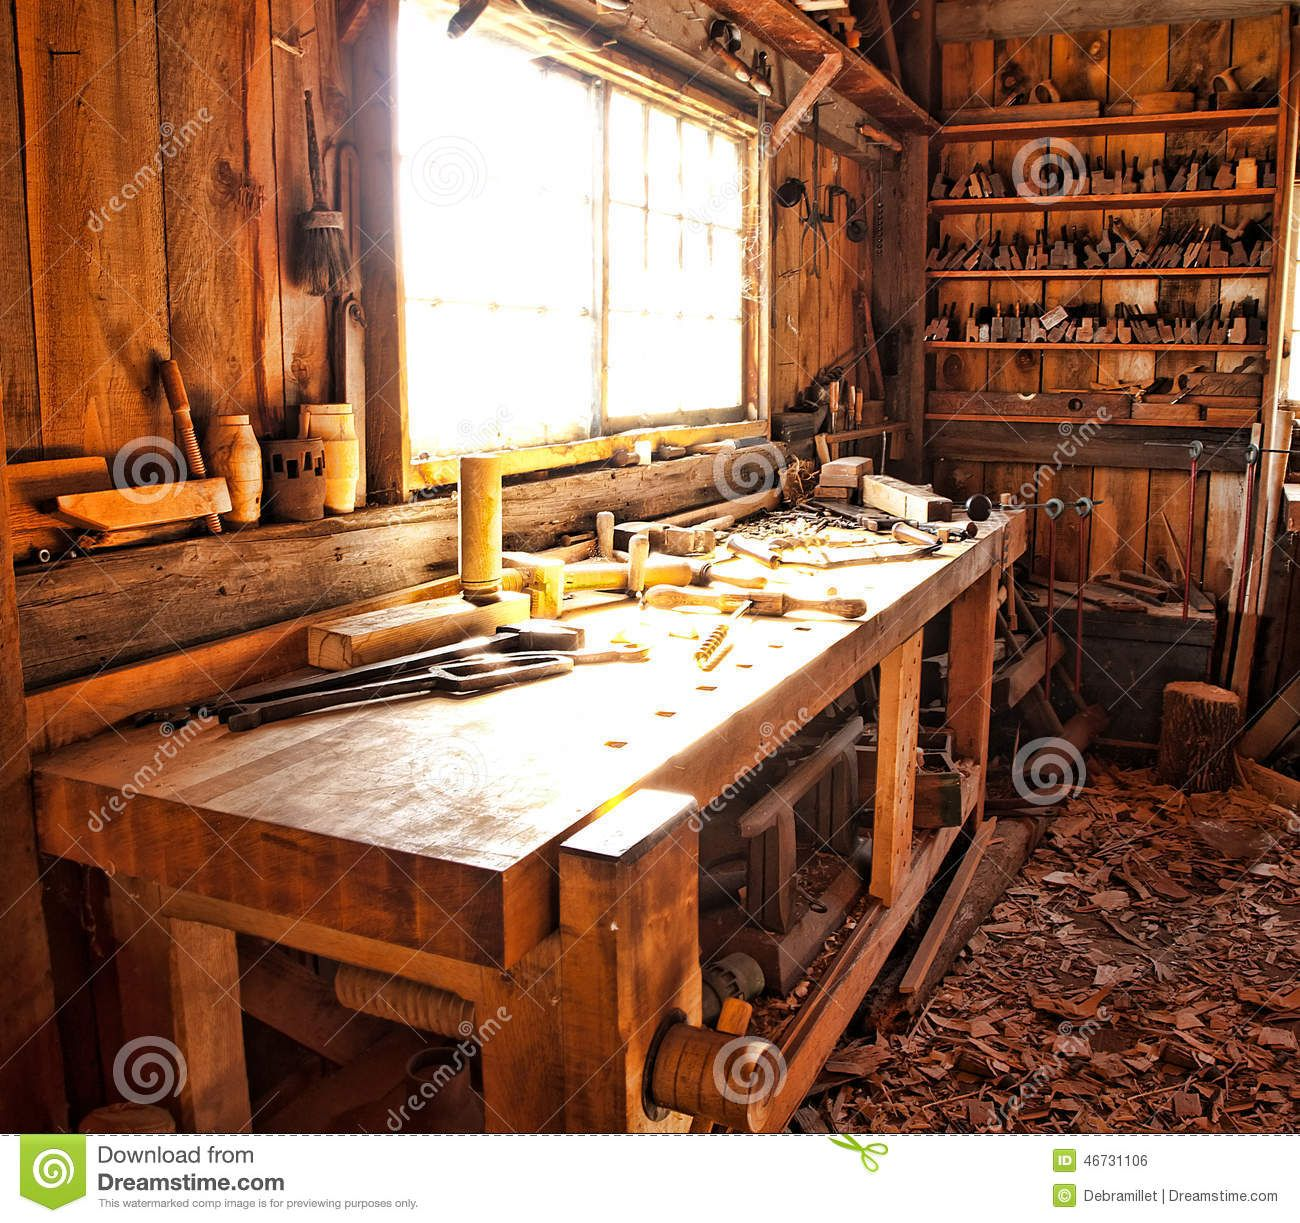 Pictures Of Old Fashioned Woodworking Workshops Google Search